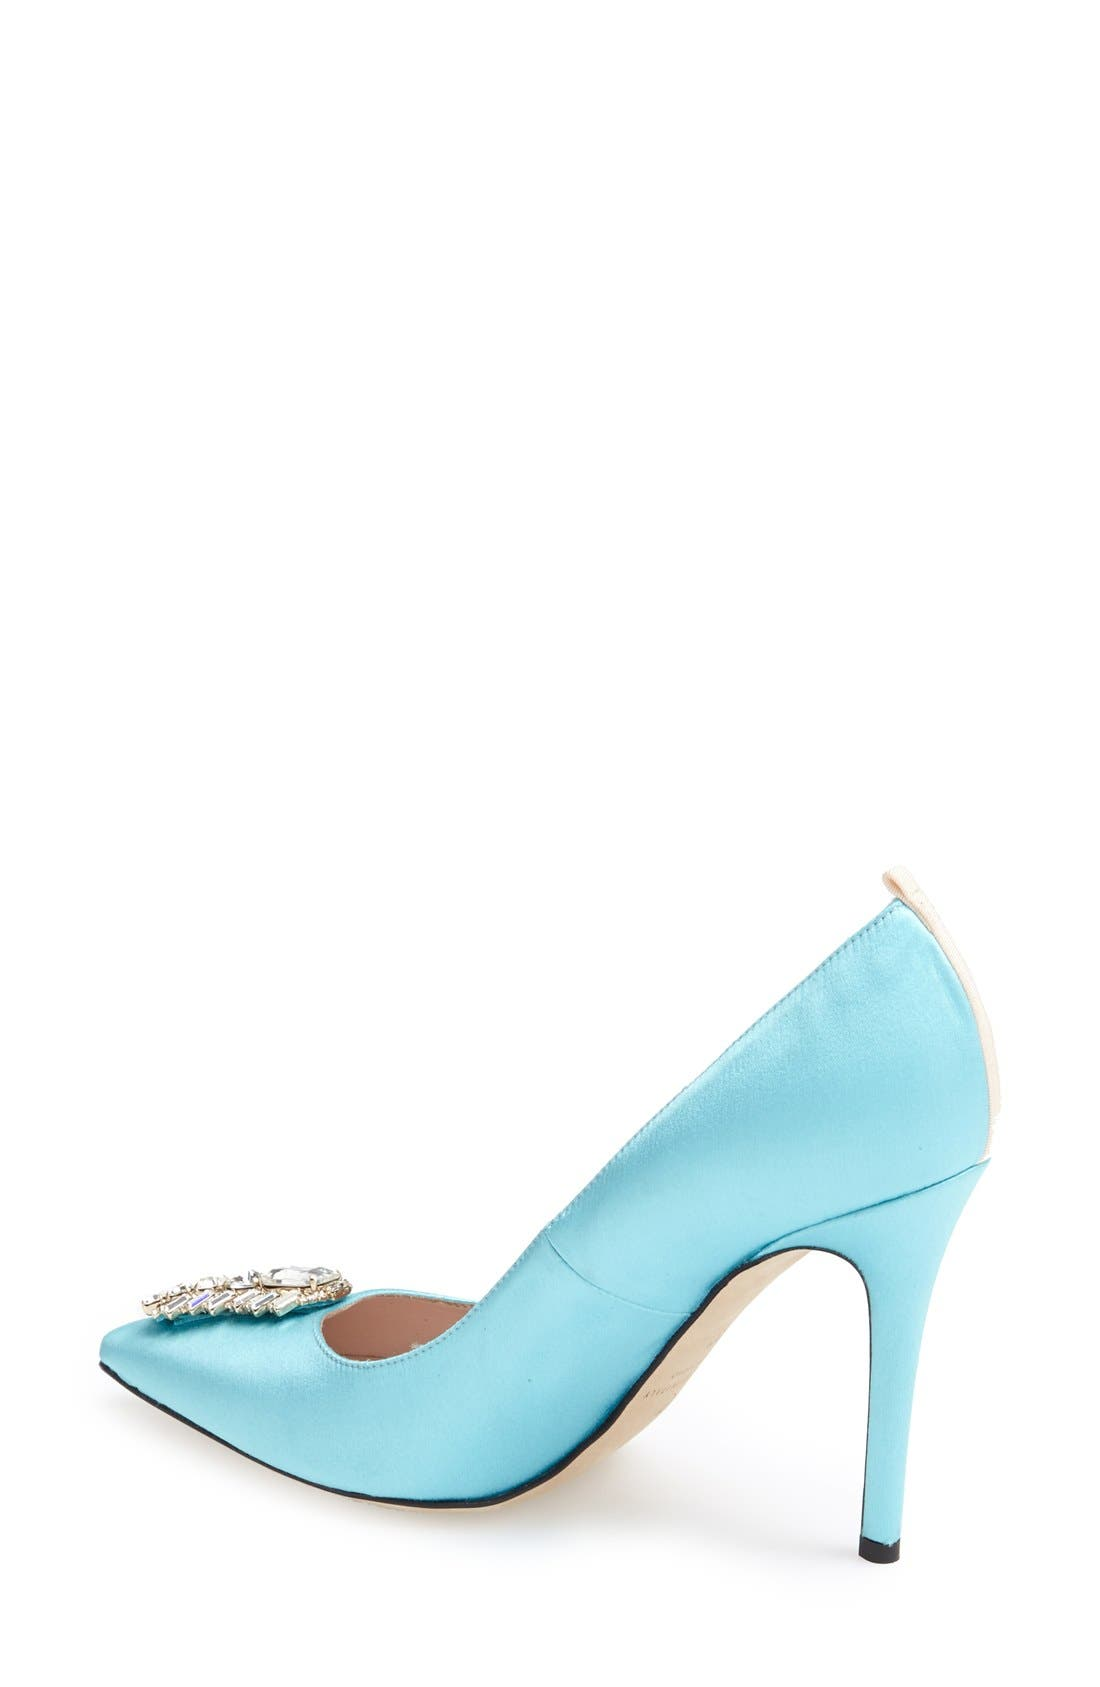 Alternate Image 2  - SJP by Sarah Jessica Parker 'Tempest' Pointy Toe Pump (Women) (Nordstrom Exclusive)